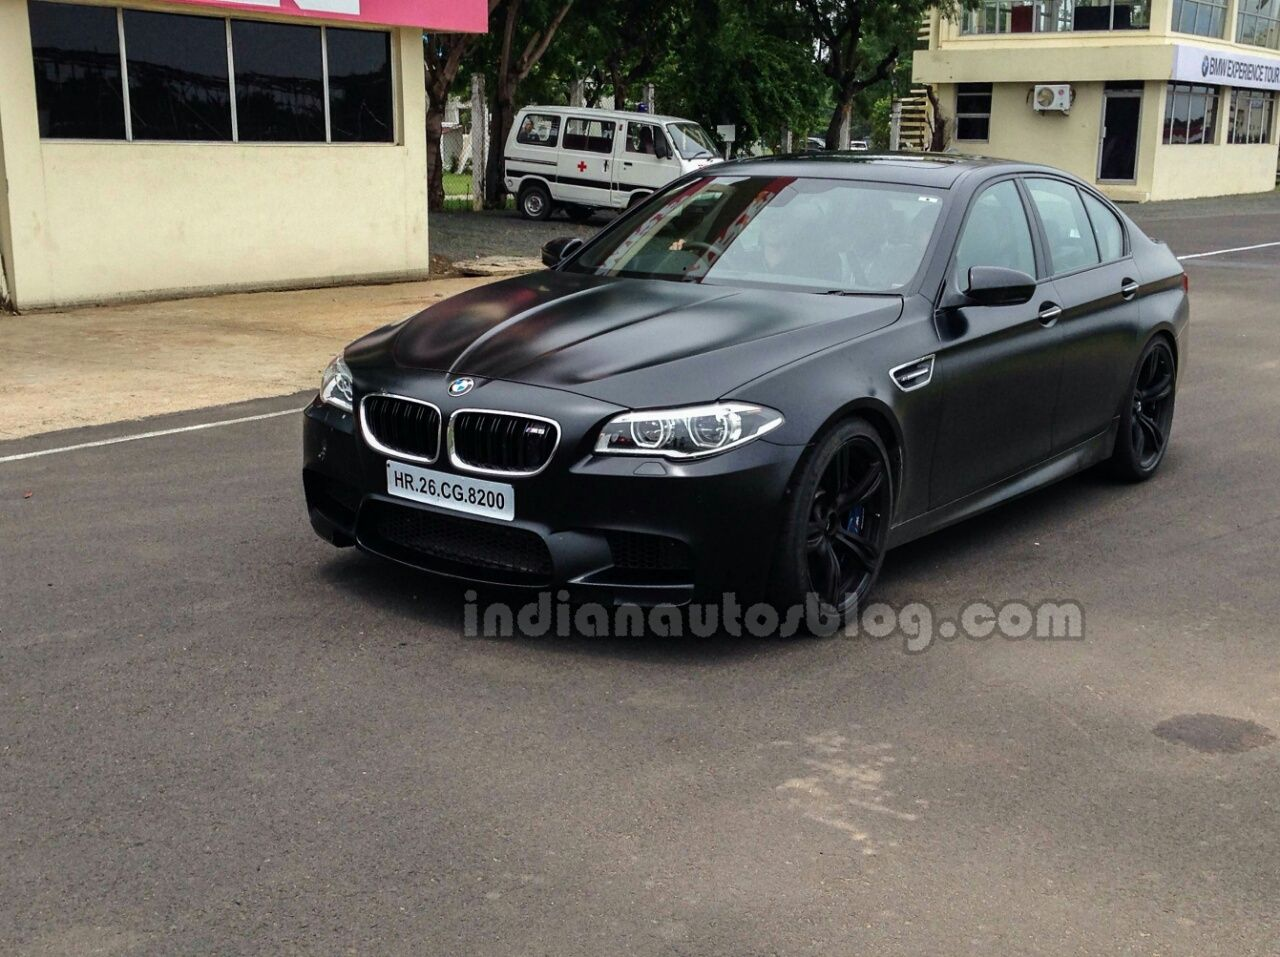 Bmw M5 Facelift Previewed At Chennai Track Event Bmw Bmw M5 Car